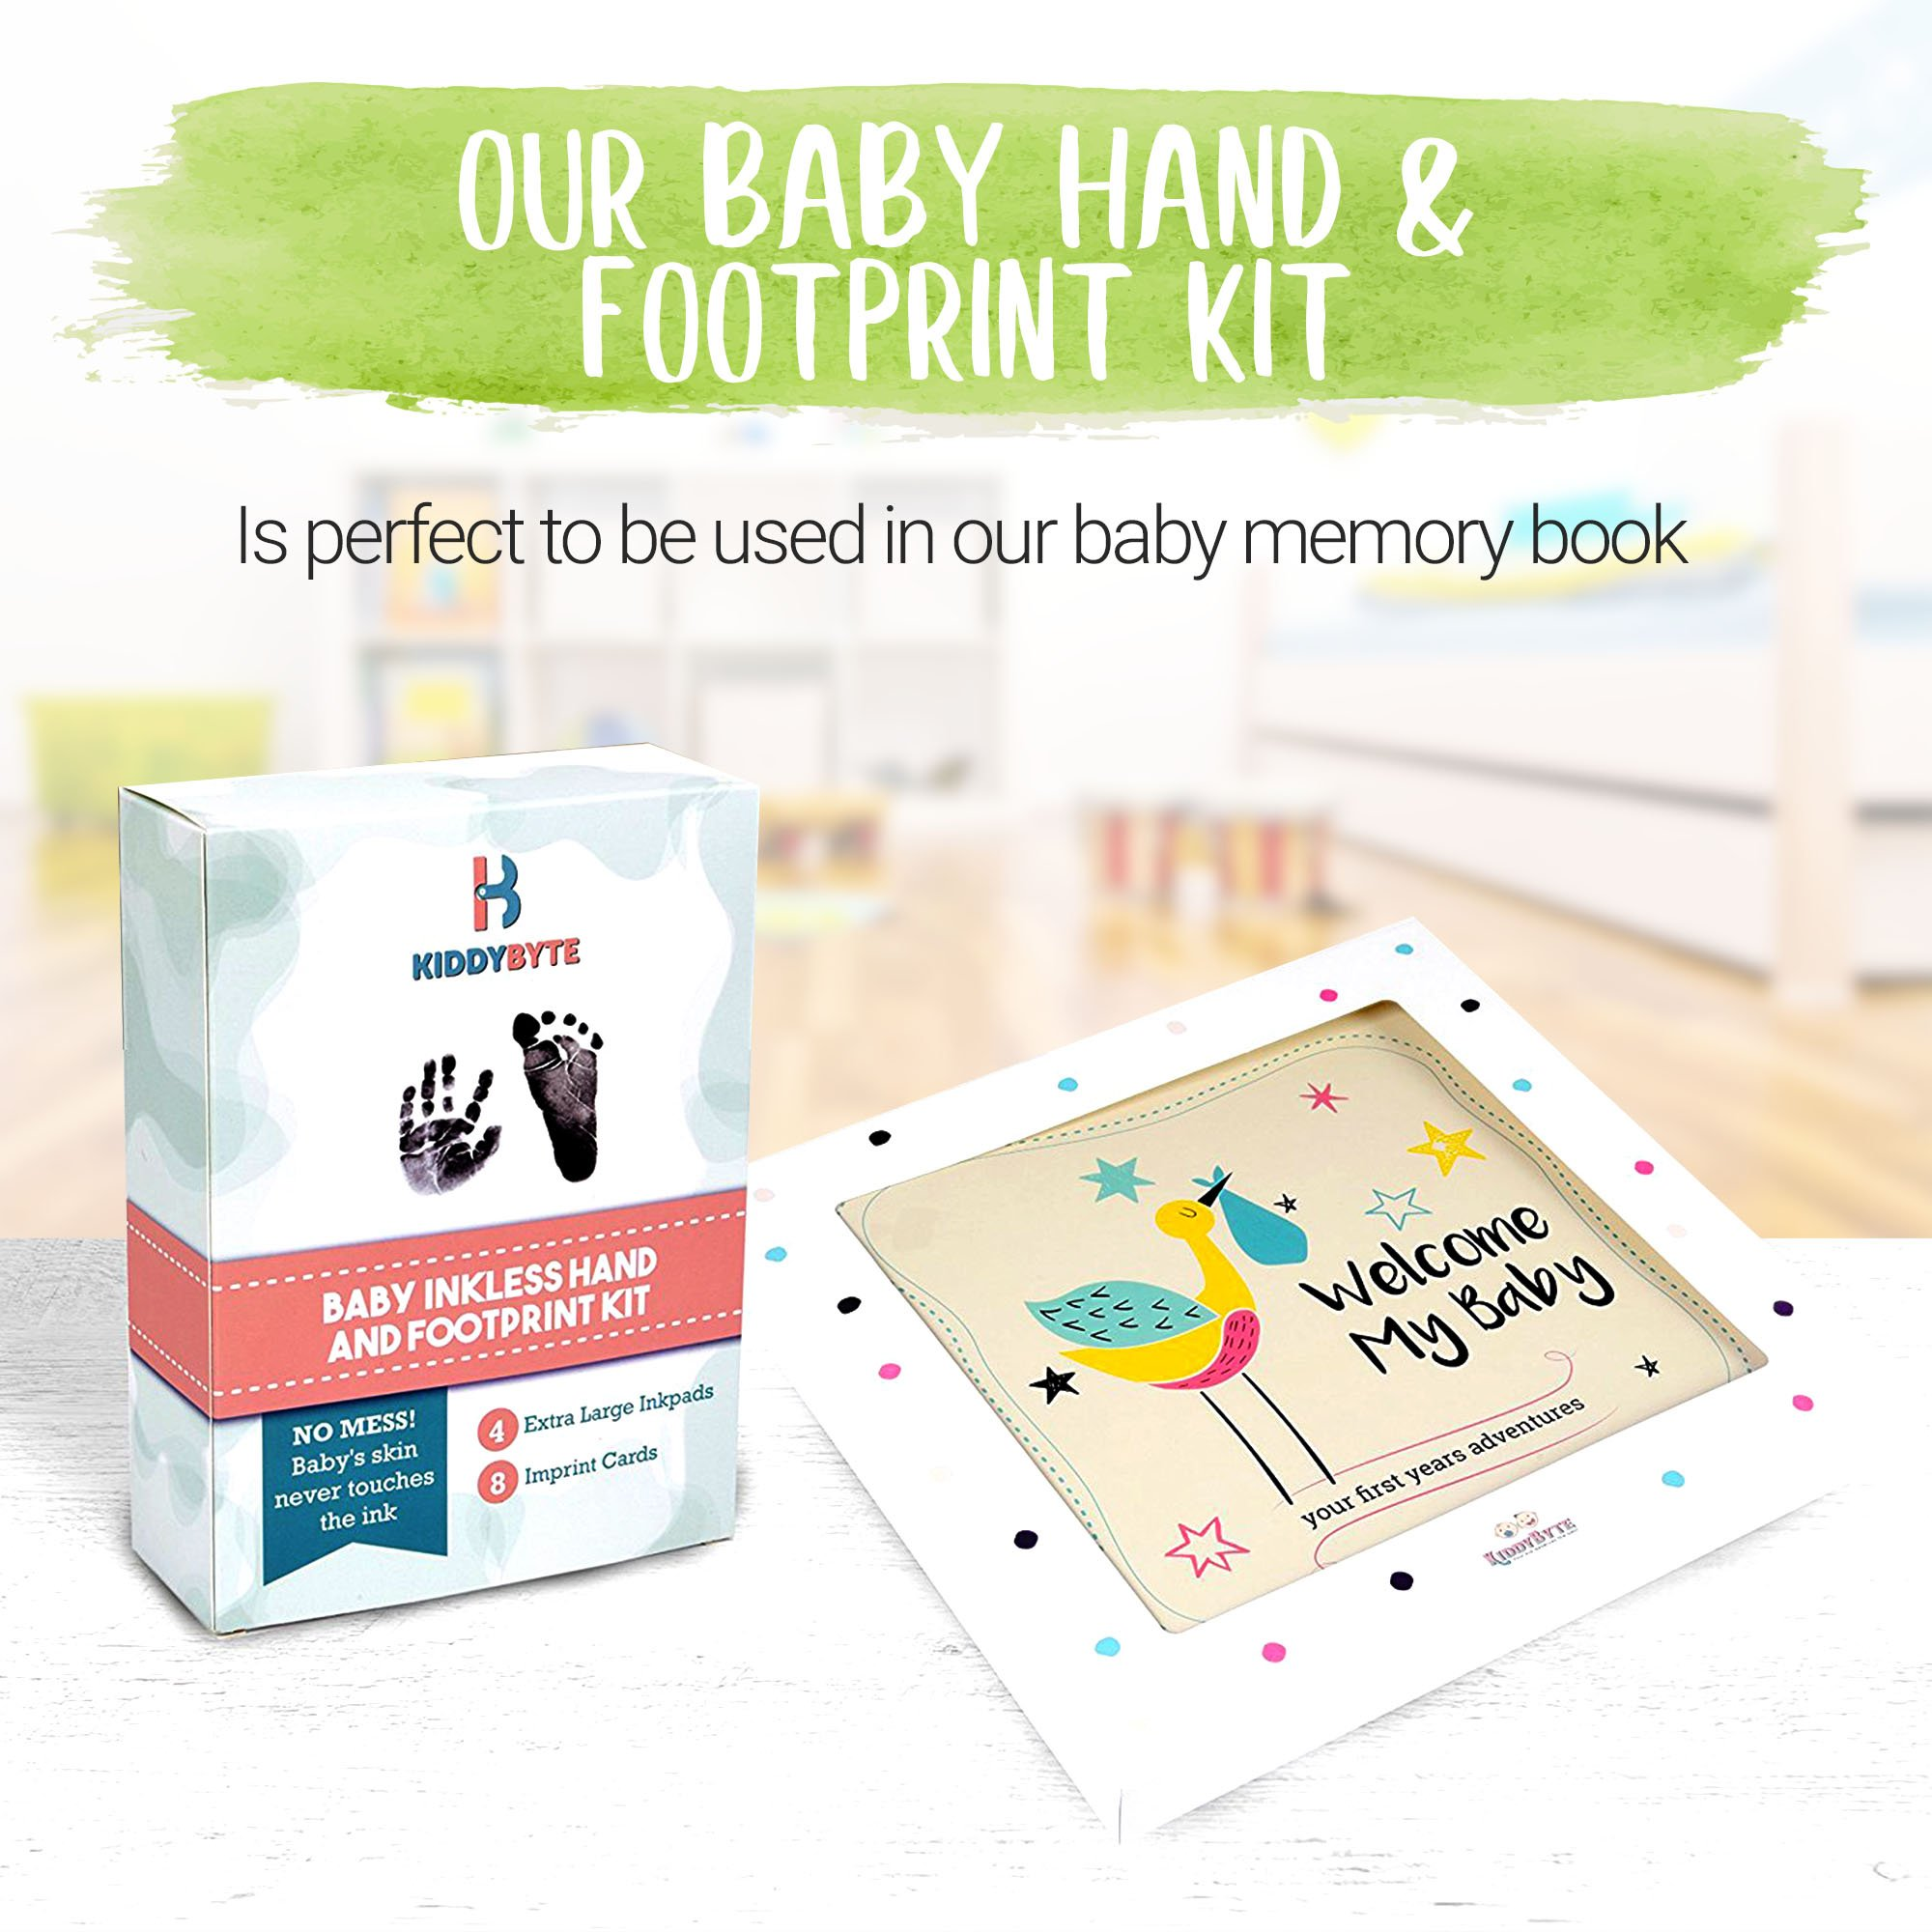 Baby Inkless Footprint & Handprint Kit with 4 Extra Large Ink Pads and 8 Imprint Cards by KiddyB, Perfect Baby Shower Registry Gift for Boys and Girls Photo Or Picture Frames by KiddyB (Image #5)